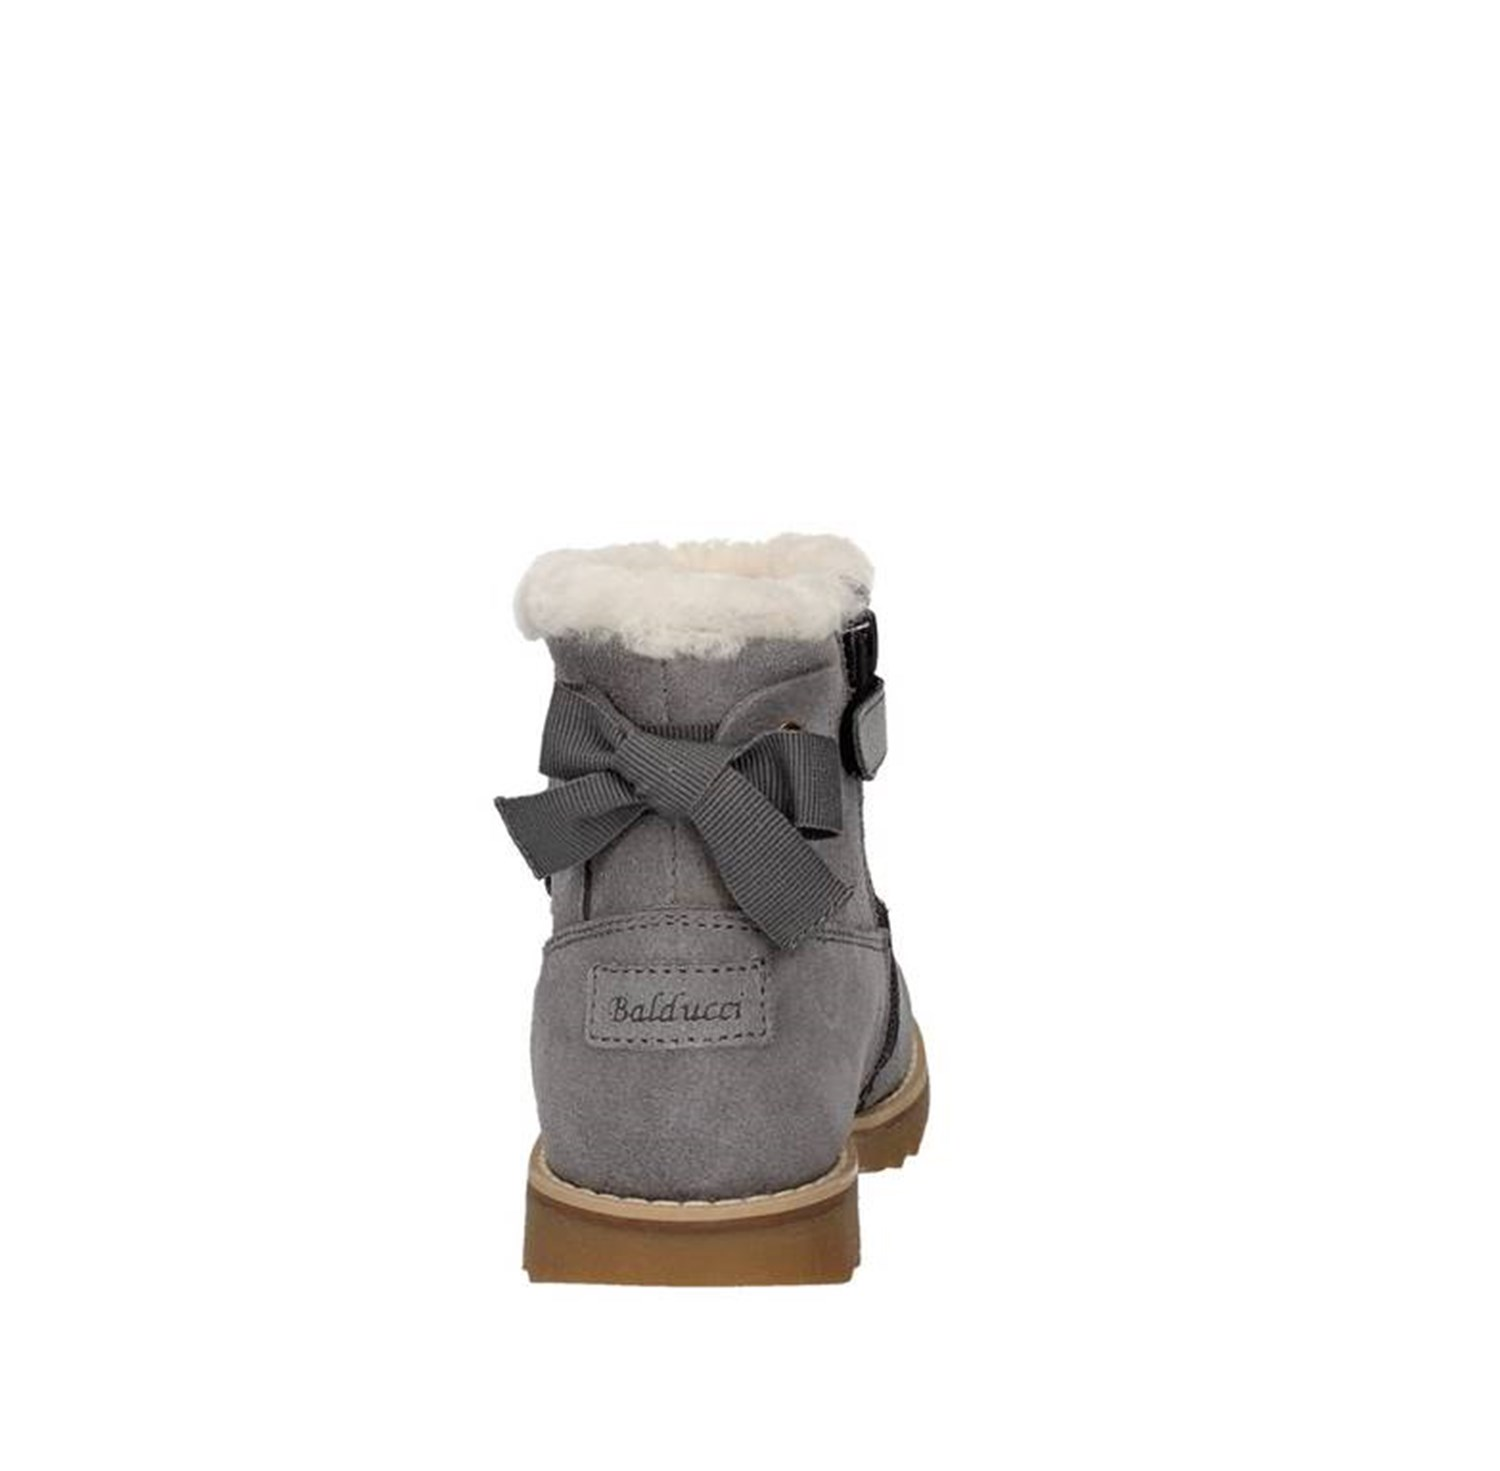 Balducci Shoes Child low GREY CITA100